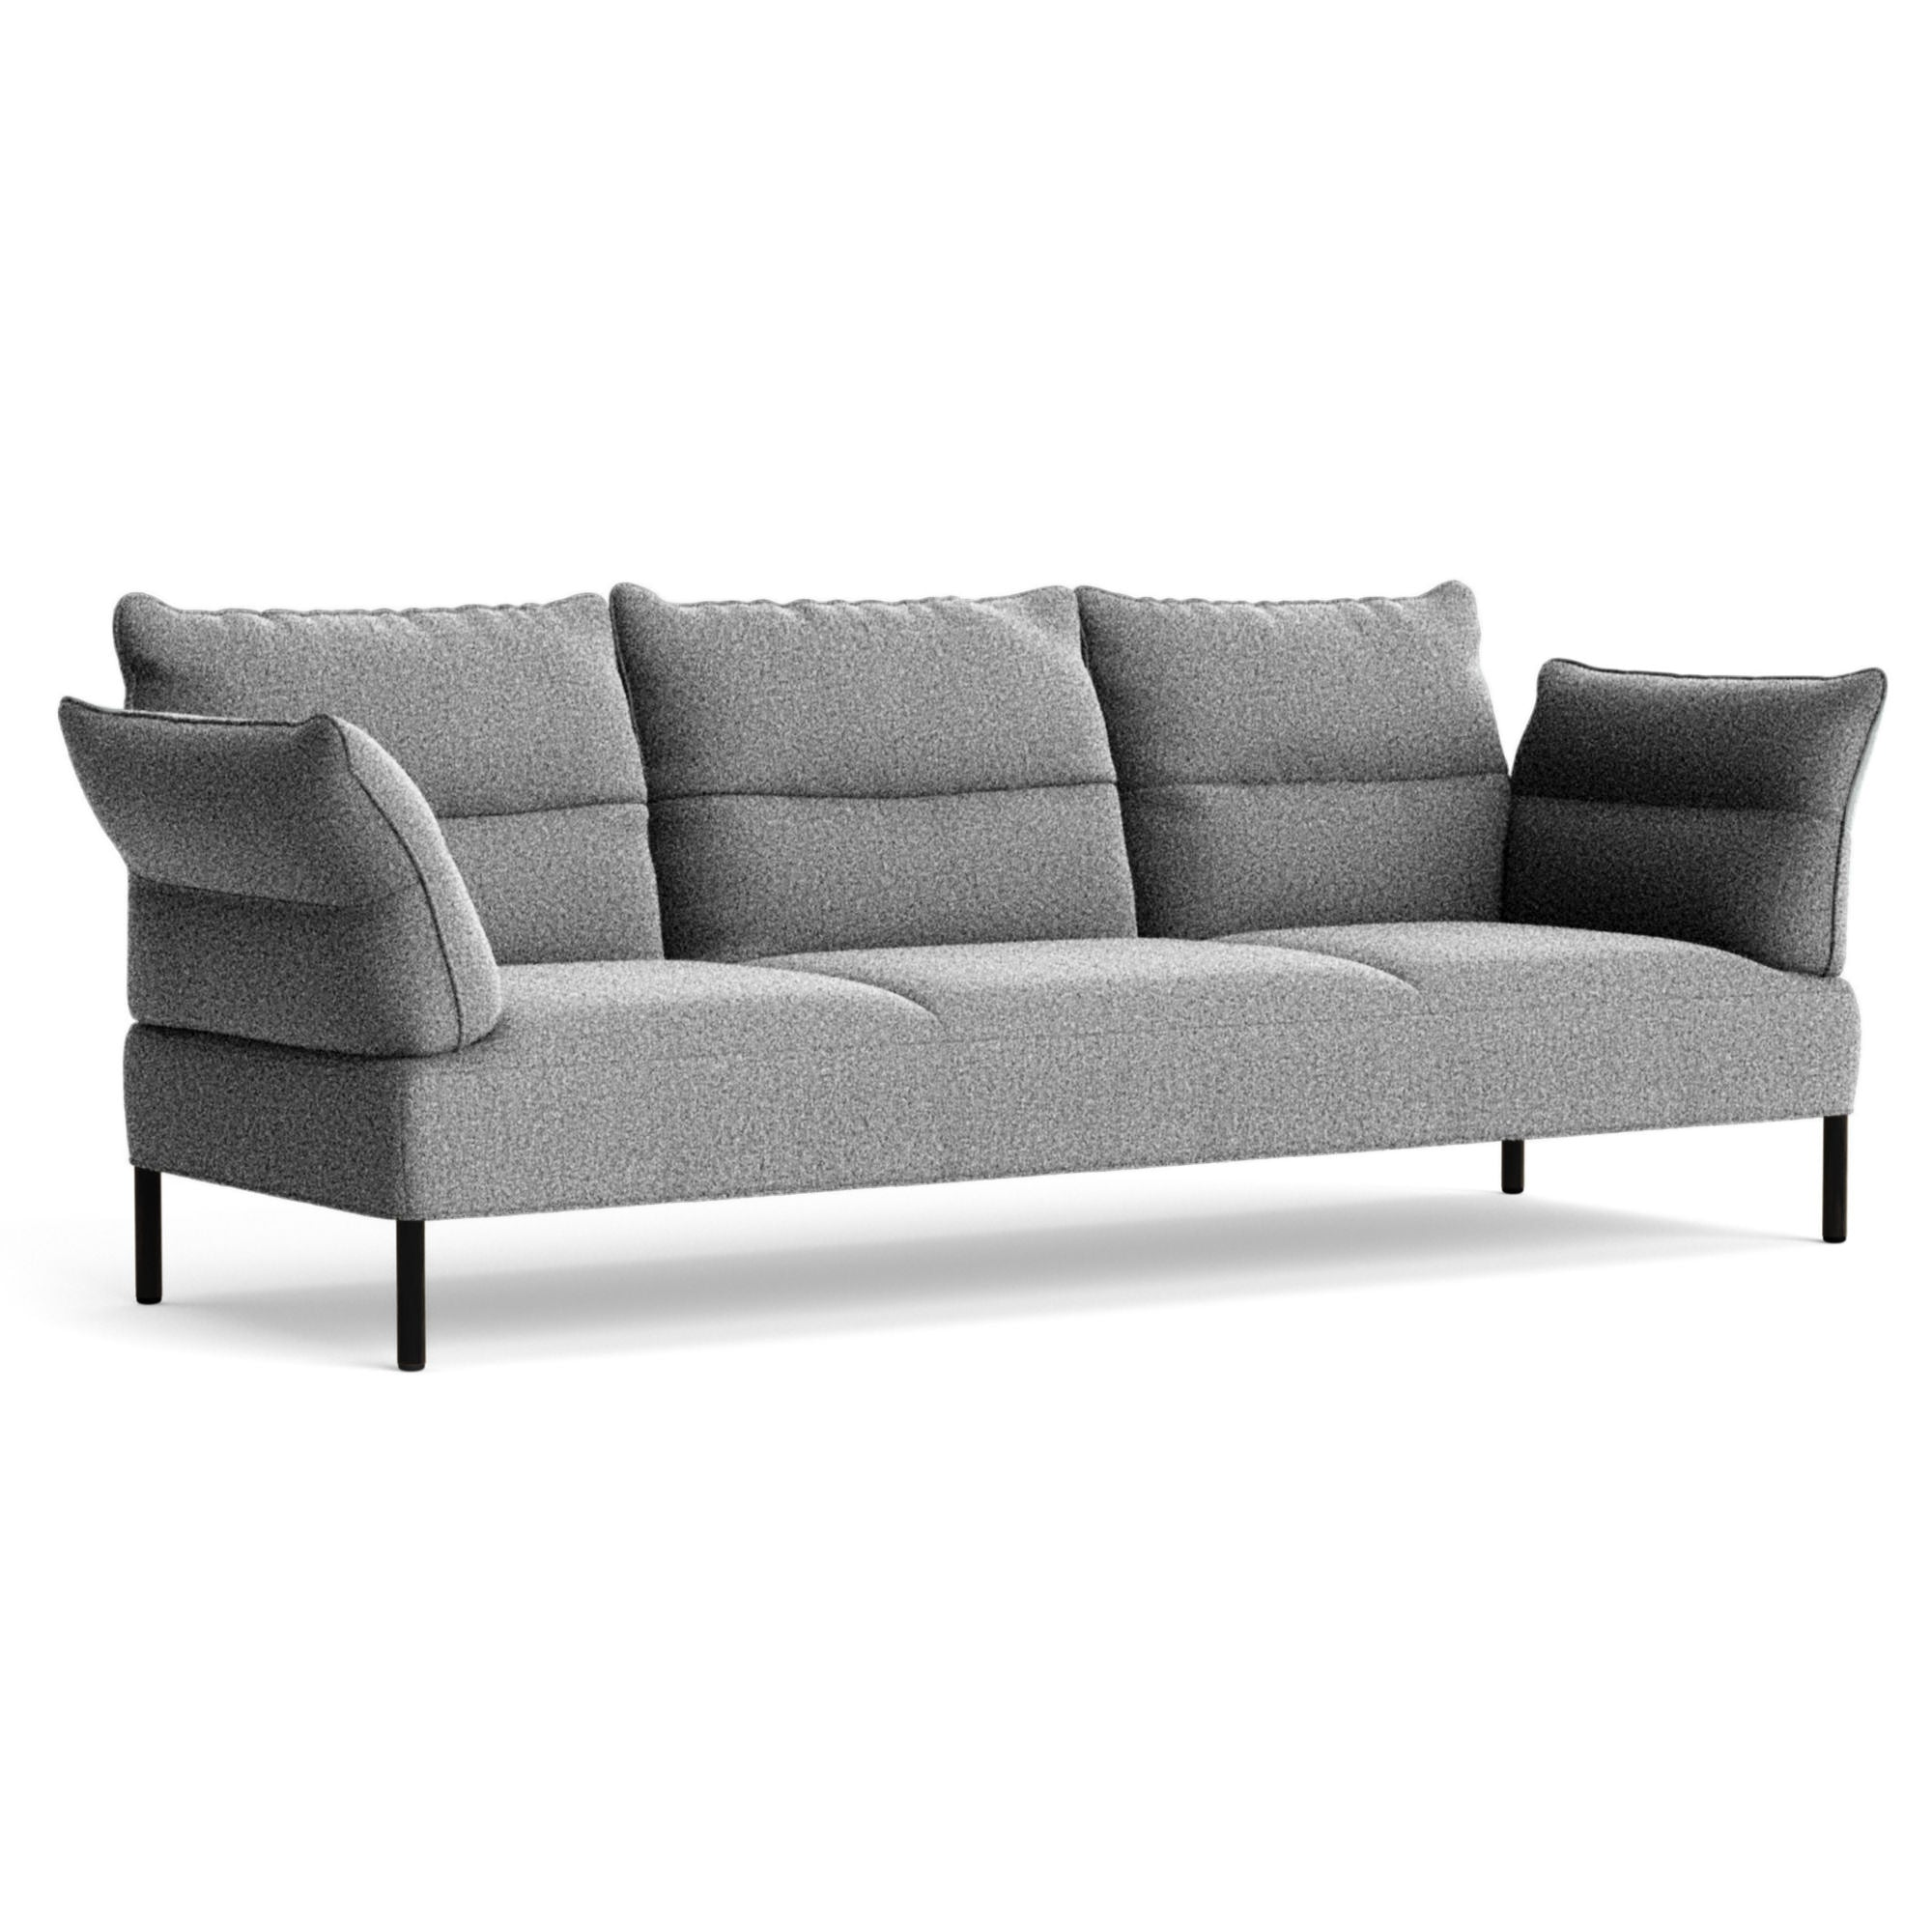 HAY Pandarine 3-Seater Sofa w. Reclining Armrest , Olavi 03/Black Stained Oak